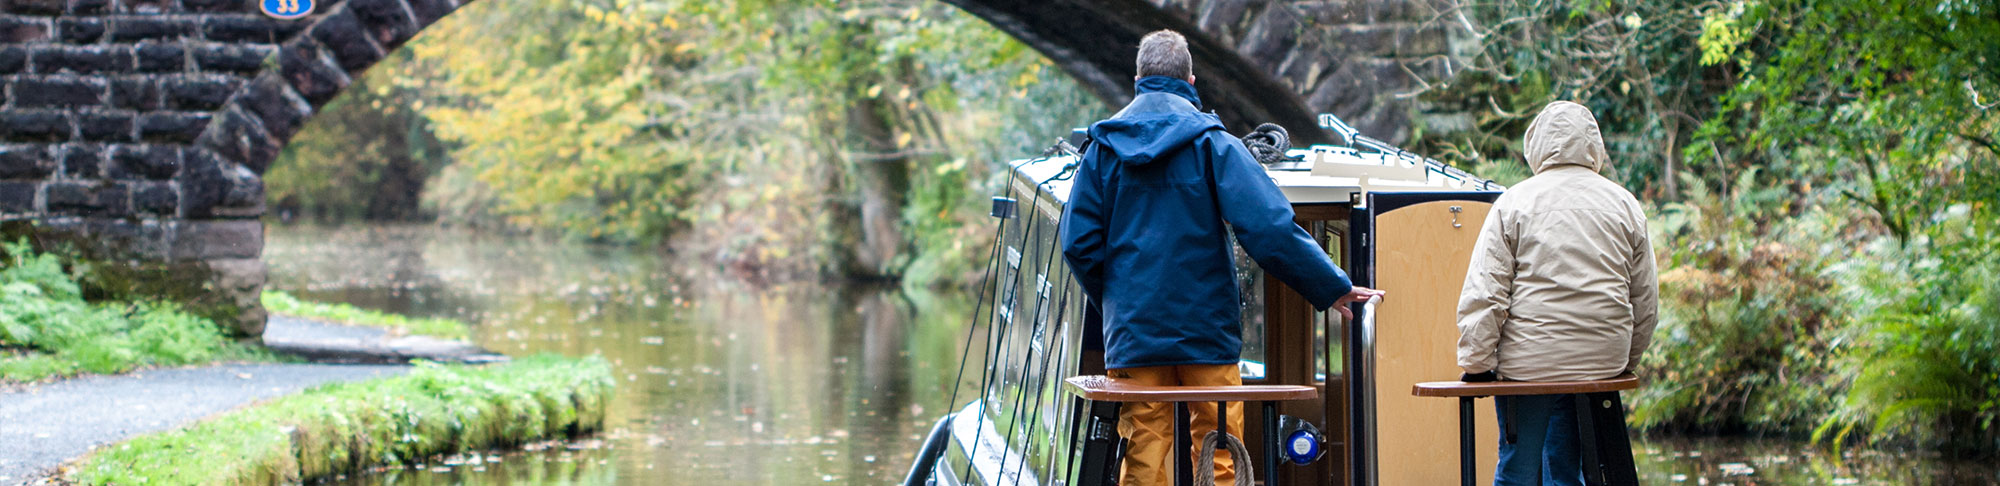 2 people stood at the back of narrow houseboat guiding boat under bridge